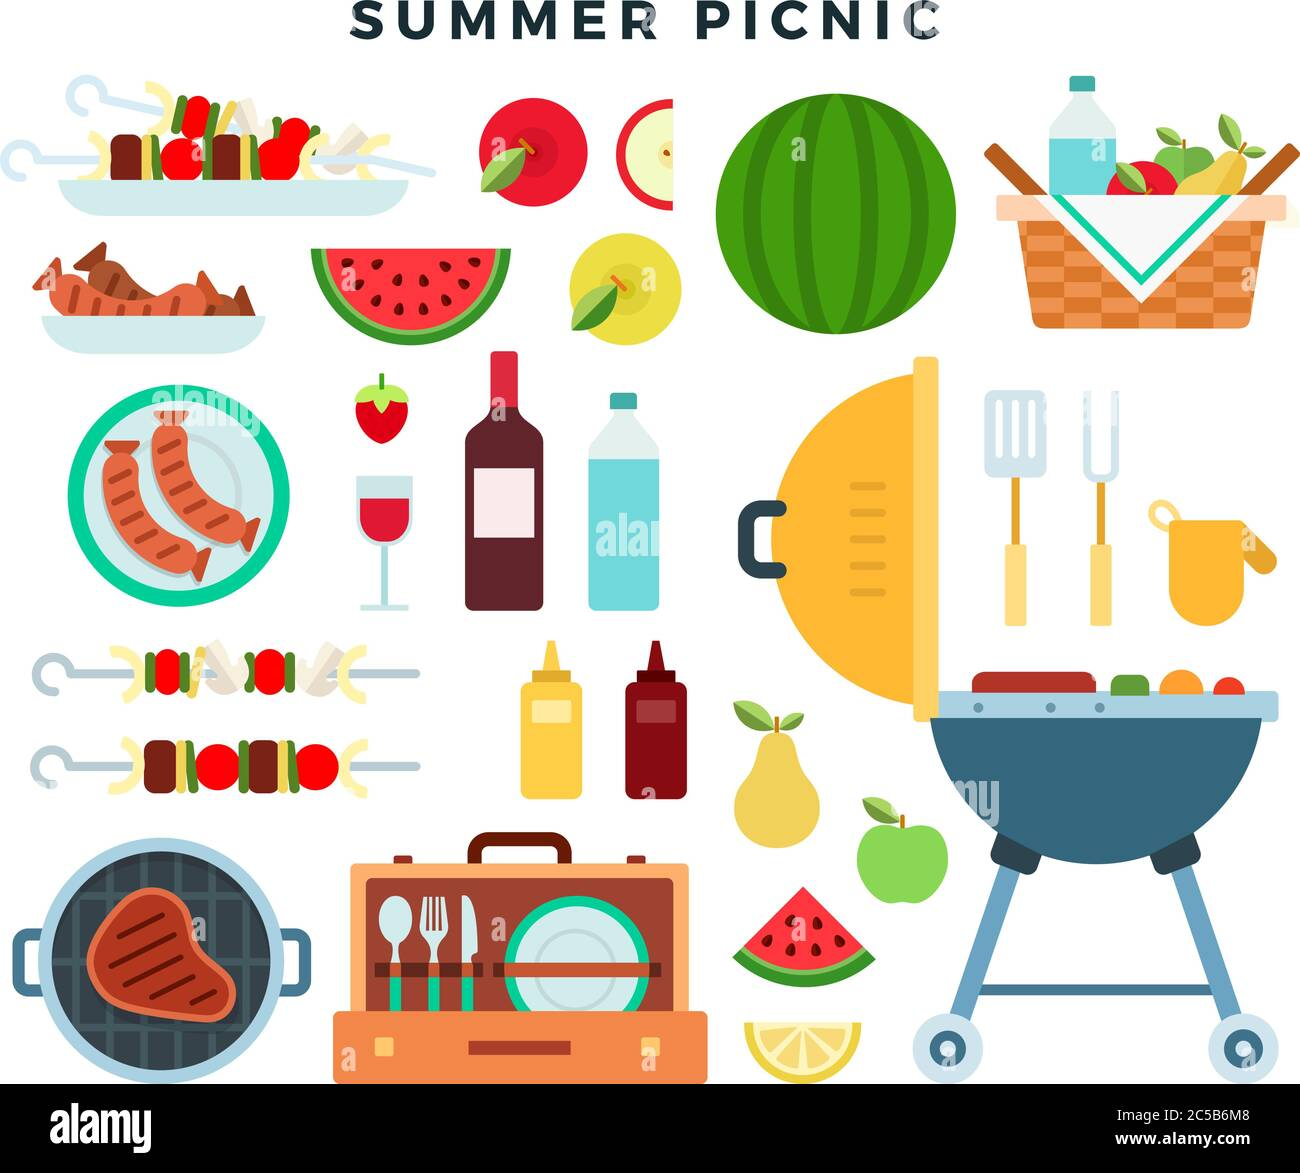 Summer picnic party, icons set. Barbeque elements, food, drinks, picnic basket, cooking utensils. Vector illustration. Stock Vector